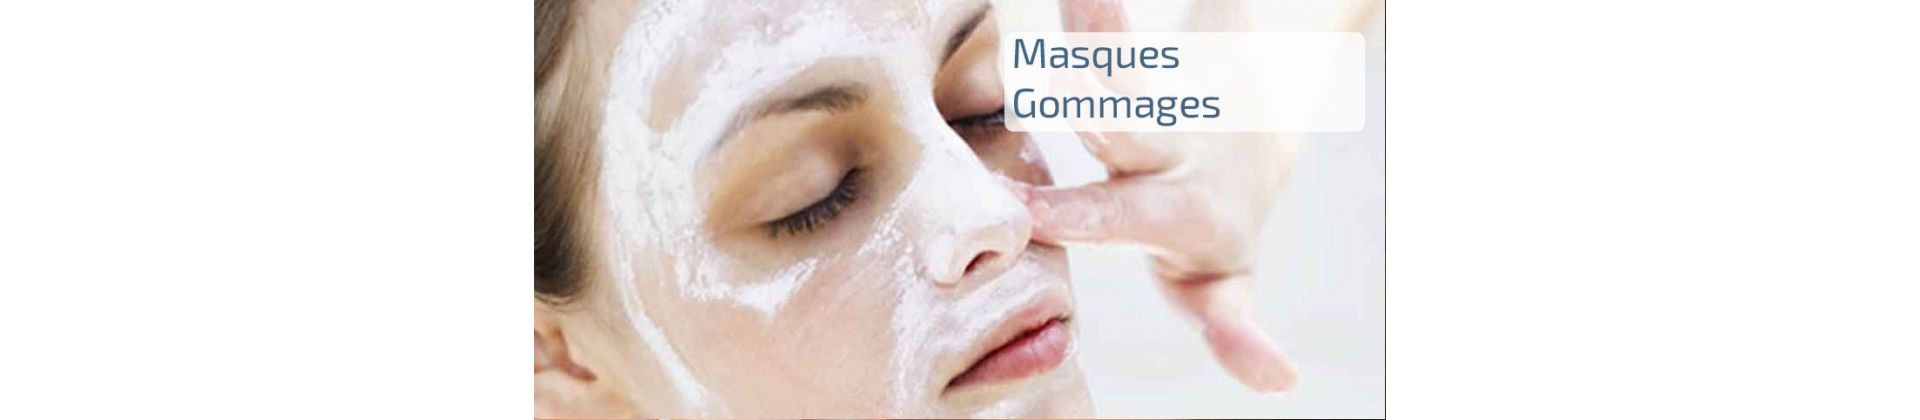 38 - Gommage & Masques